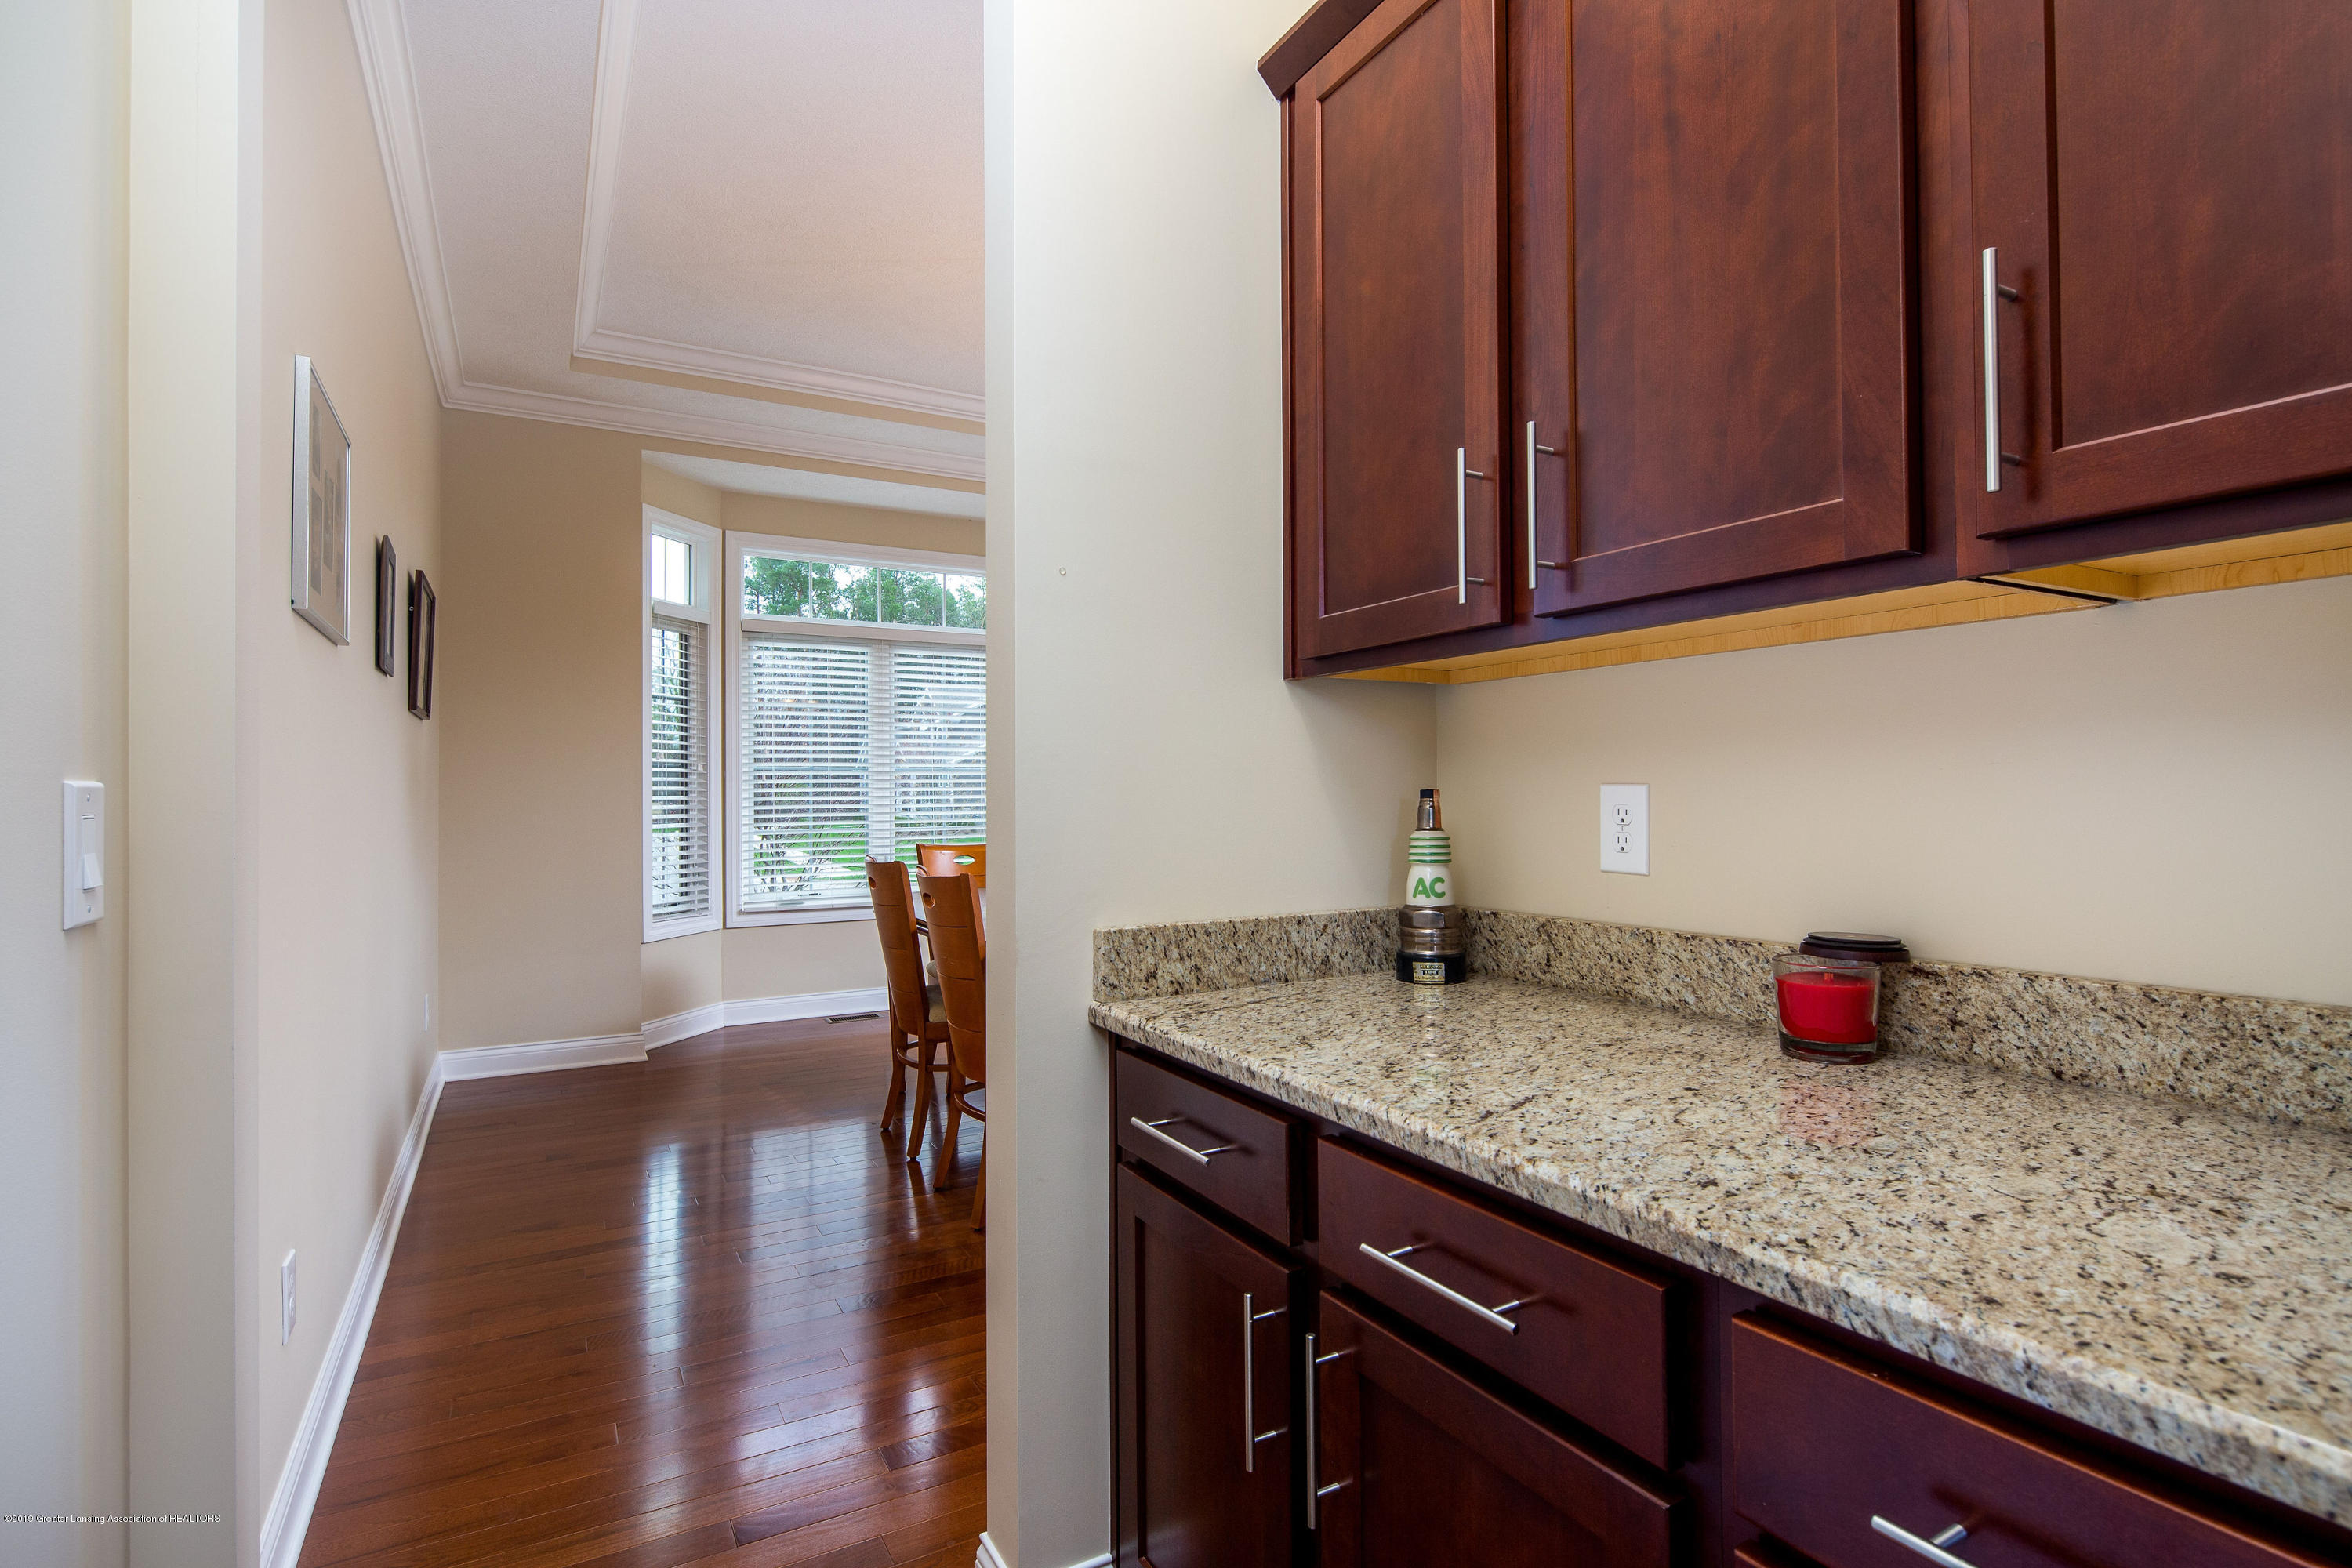 6257 Mereford Ct - 20190426-942A2740-Edit - 14